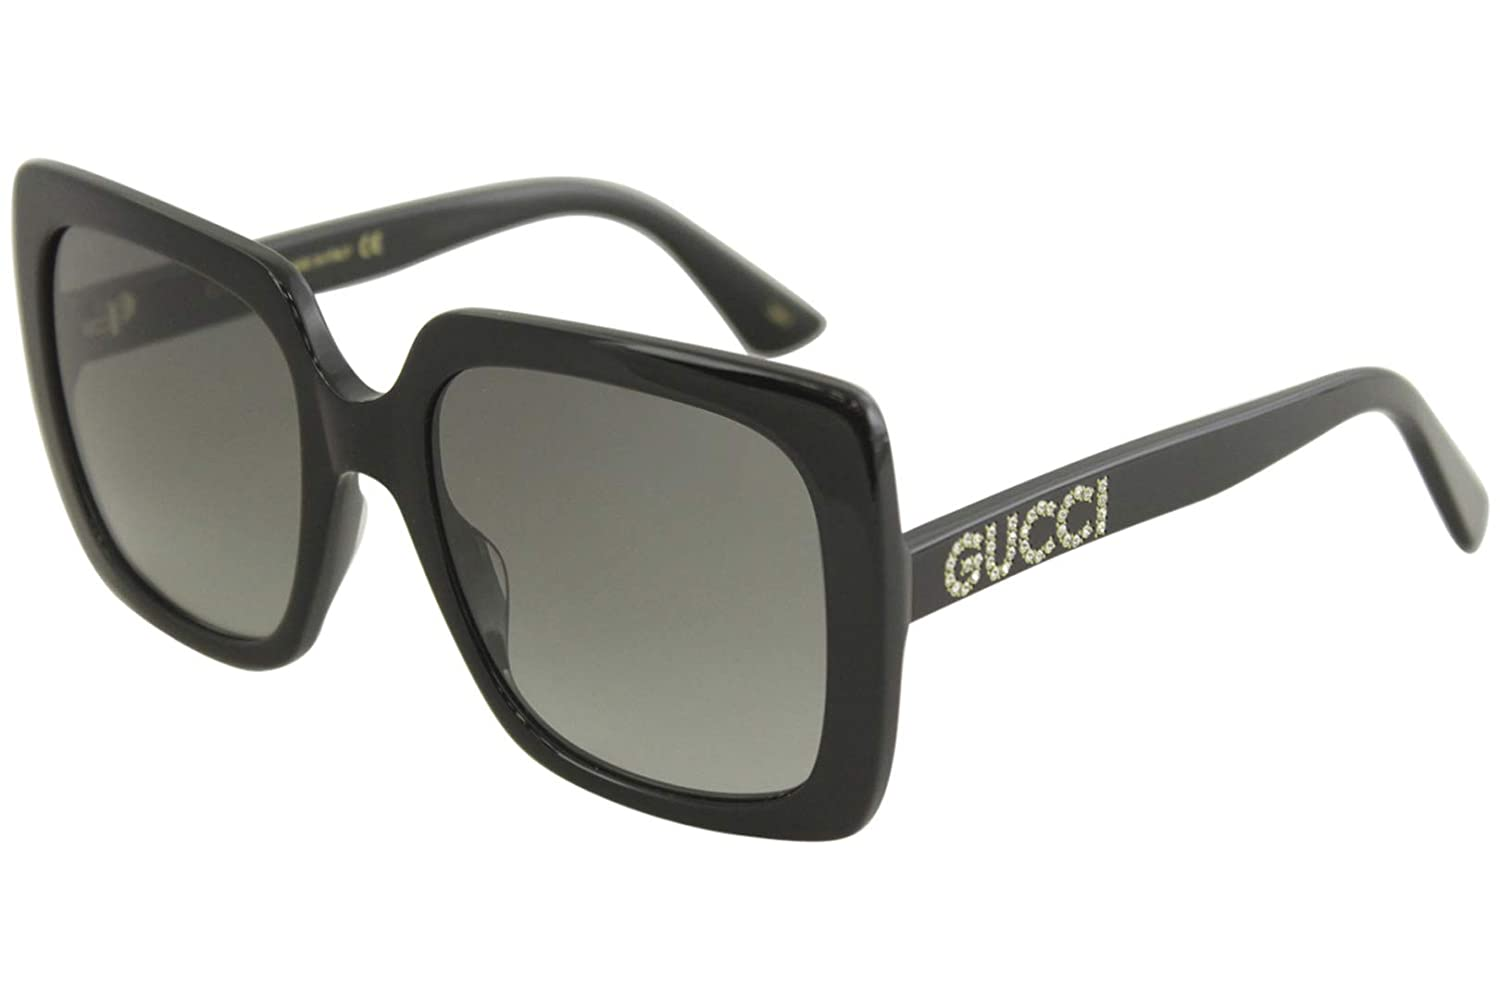 917f95e3459 Amazon.com  Gucci GG0418S 001 Black GG0418S Square Sunglasses Lens Category  2 Size 54mm  Clothing